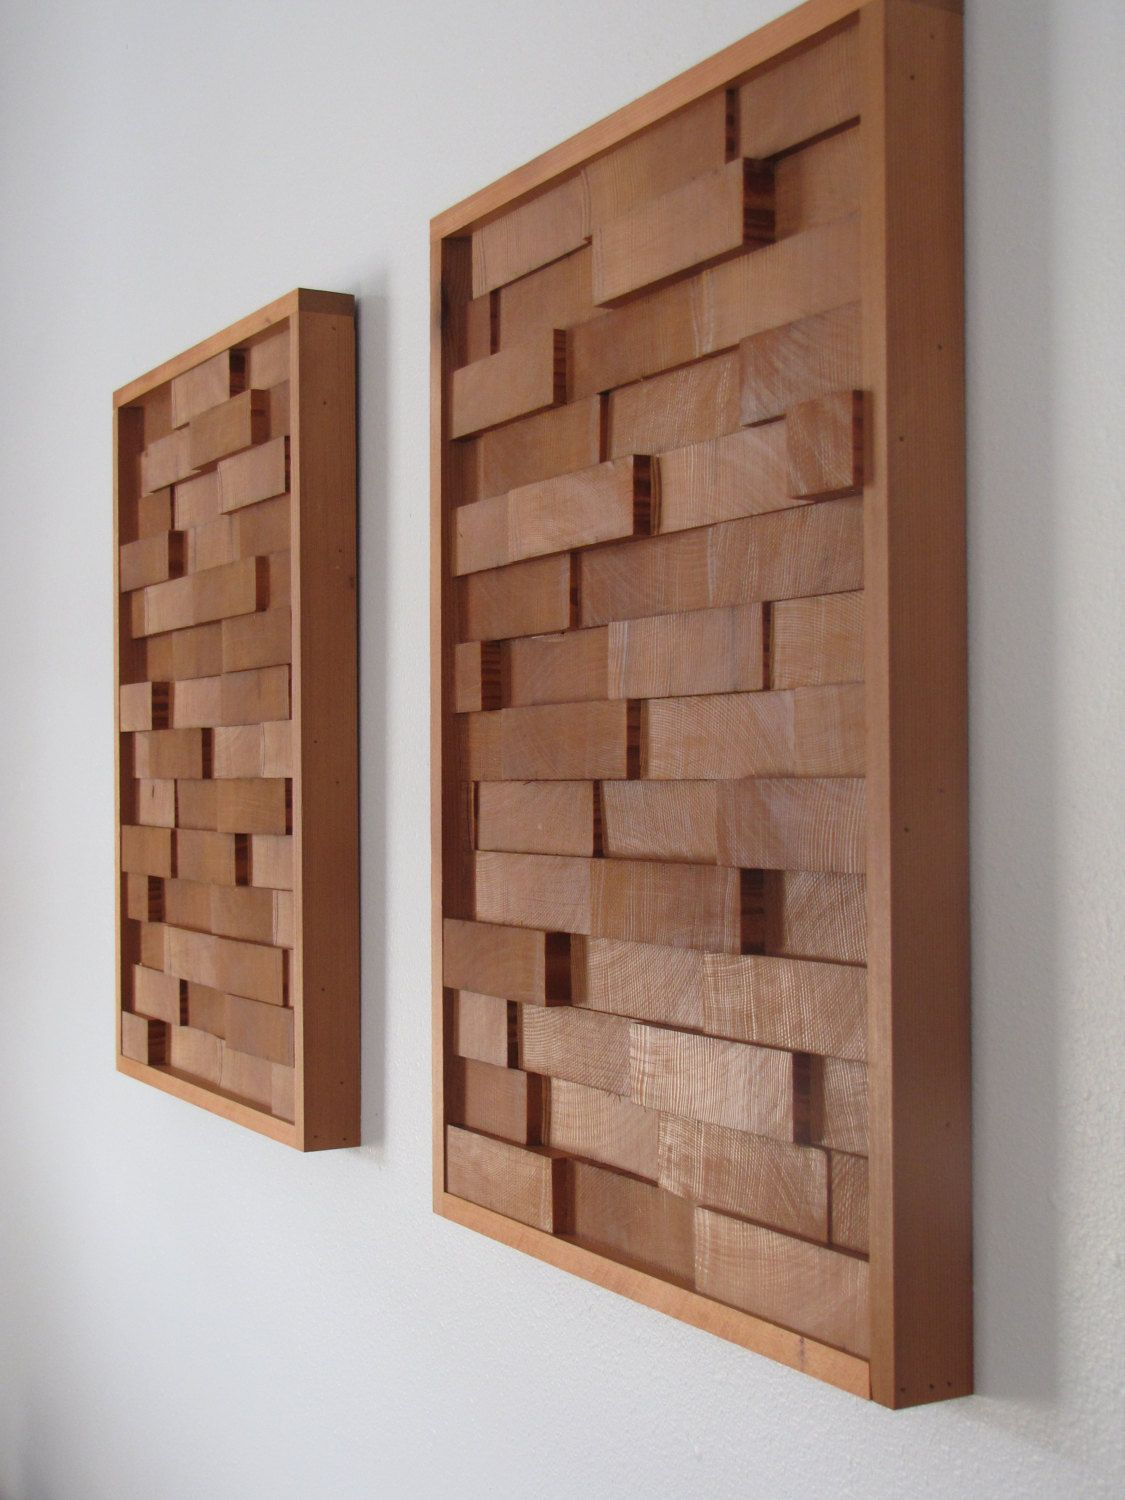 Modern REDWOOD 3D Wood Block Minimalist Wall by HeartlandWoodshop $349.99 & Modern REDWOOD 3D Wood Block Minimalist Wall by HeartlandWoodshop ...